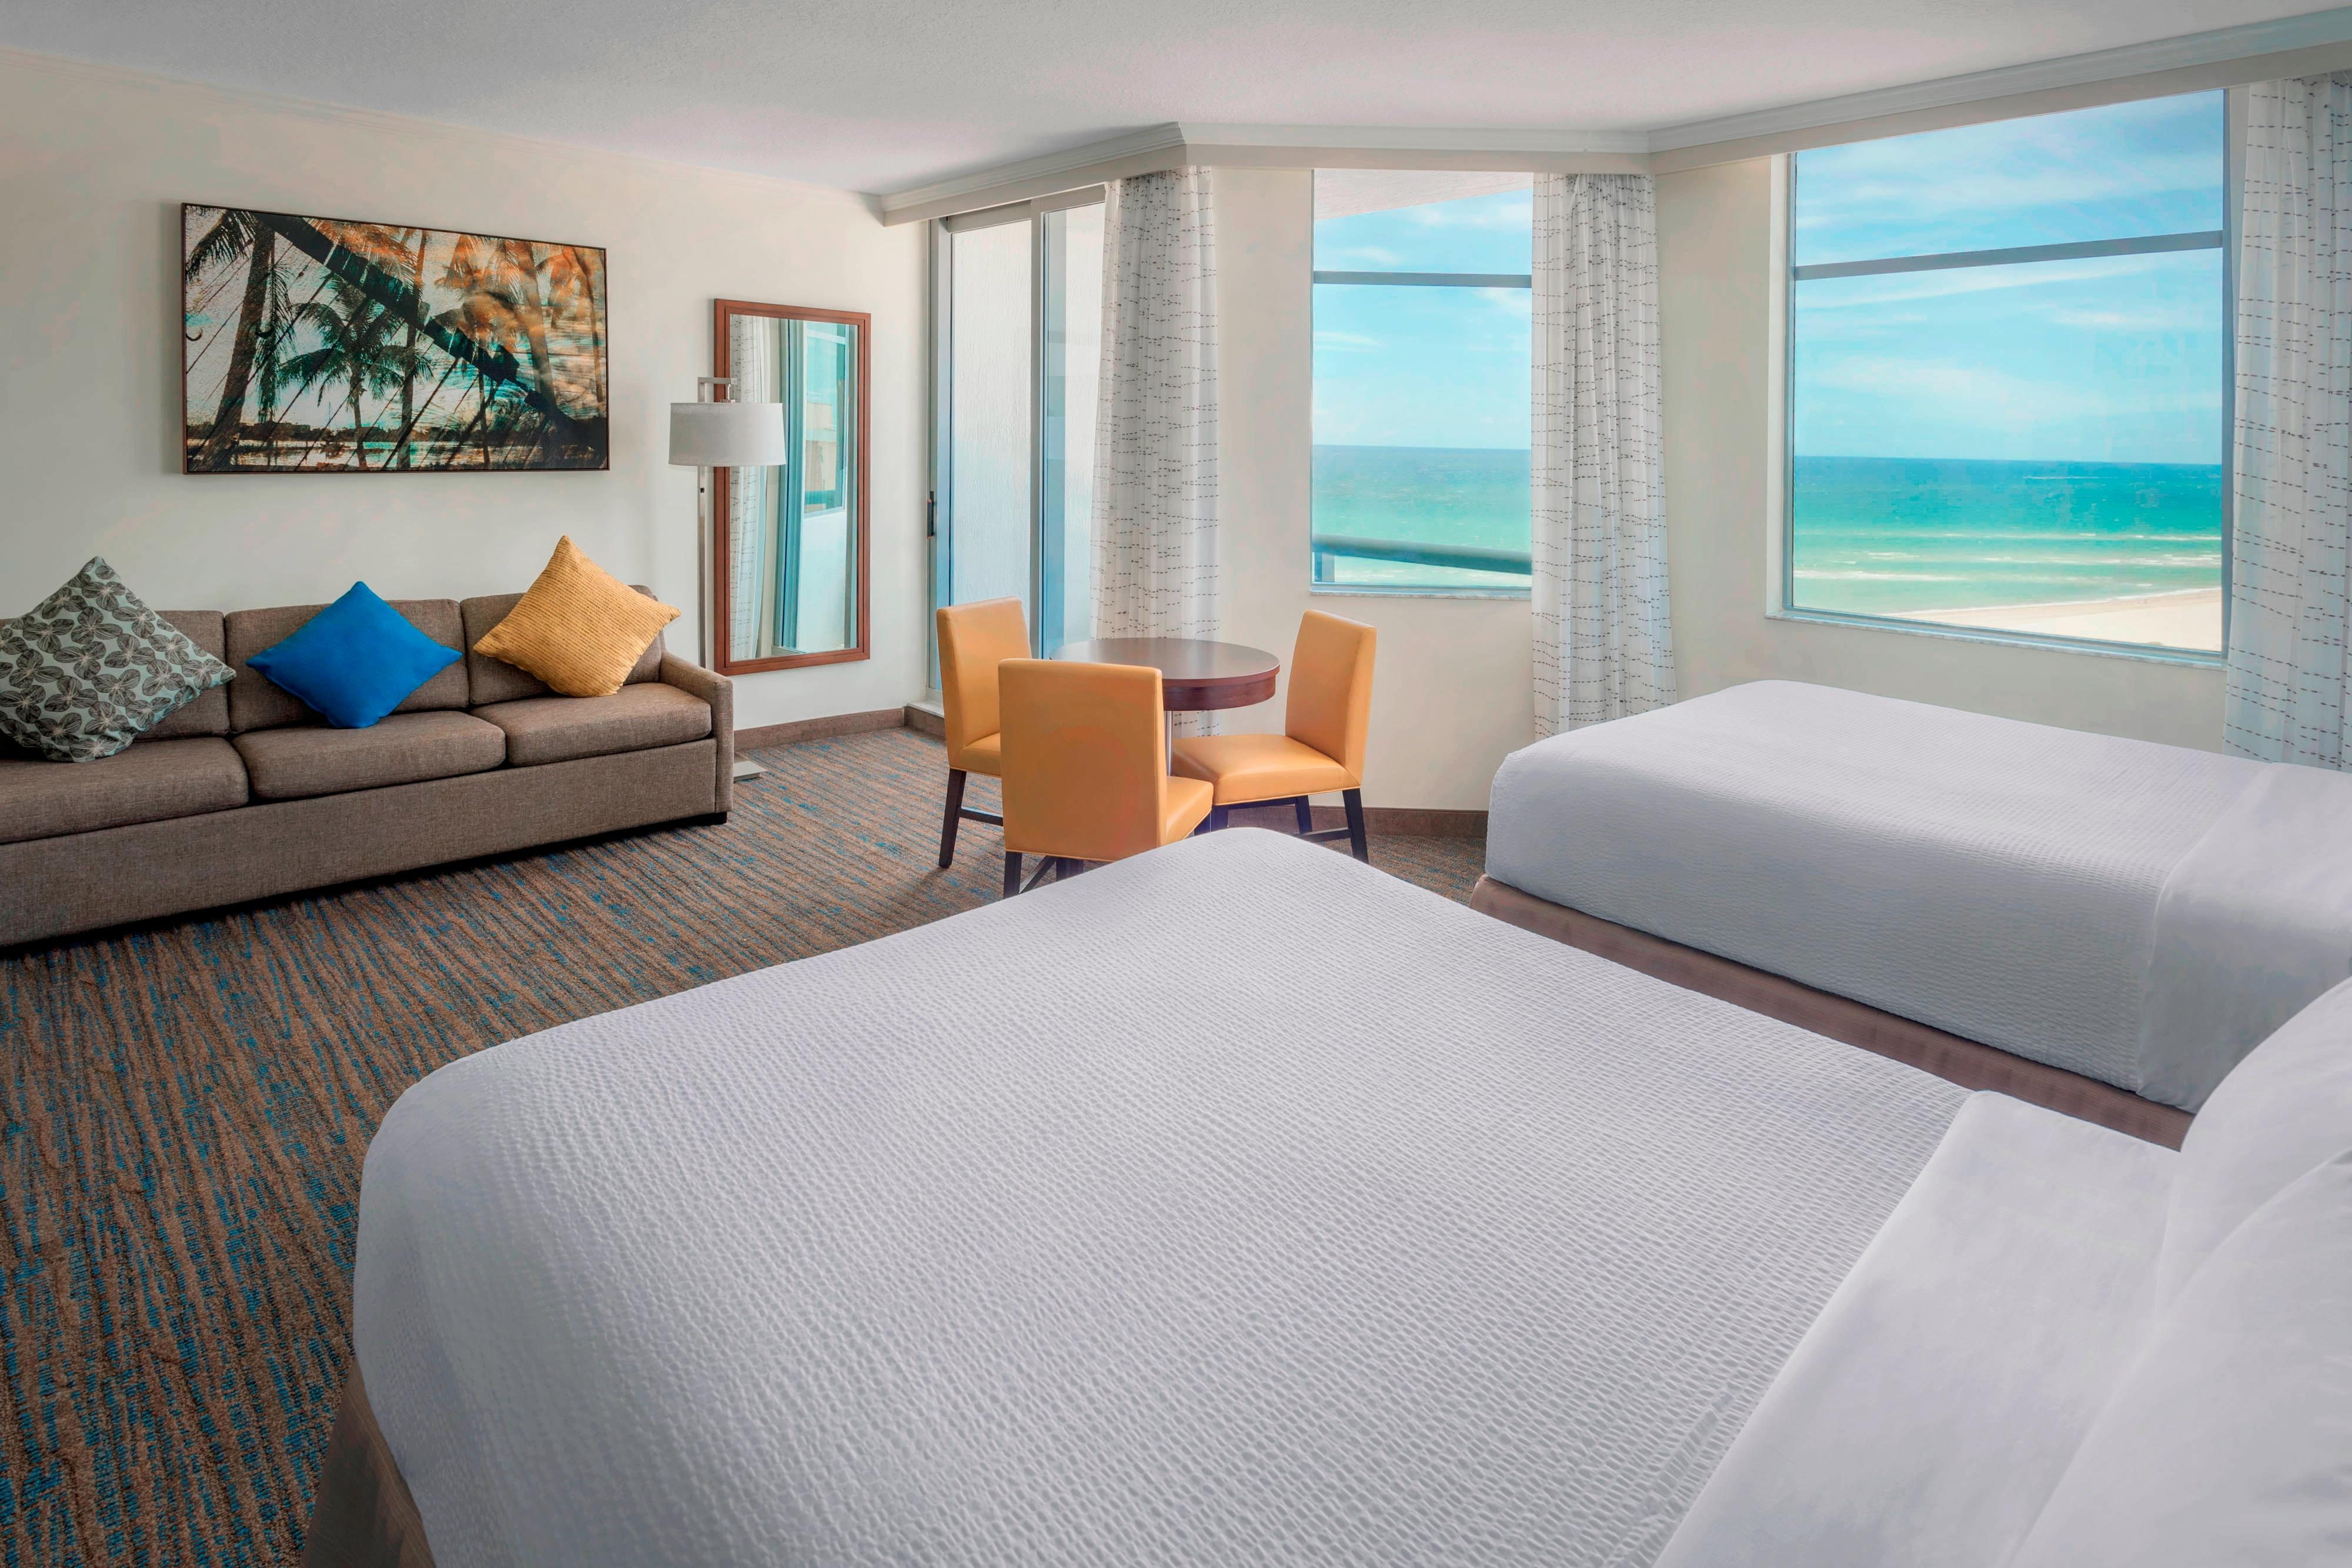 Pompano beach hotel guest rooms in pompano beach fl - Cheap 2 bedroom suites in miami beach ...